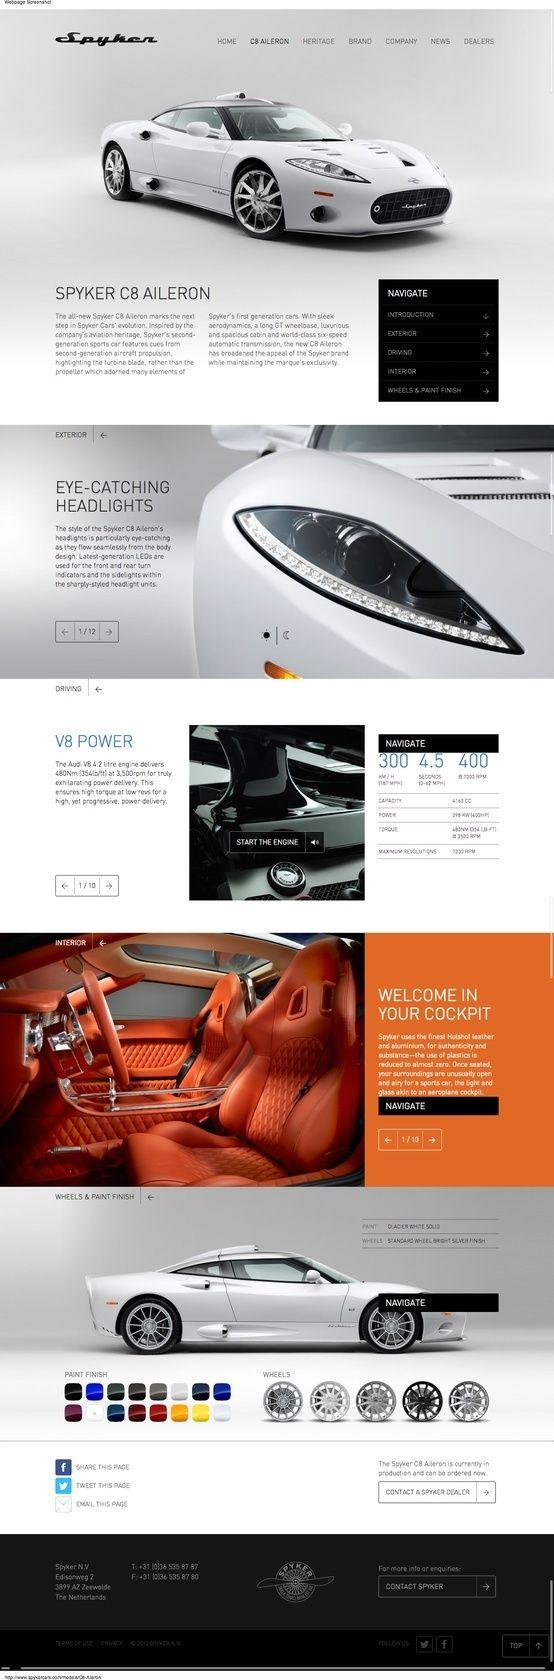 Web design inspiration #webdesign #design #designer #inspiration #user #interface #ui